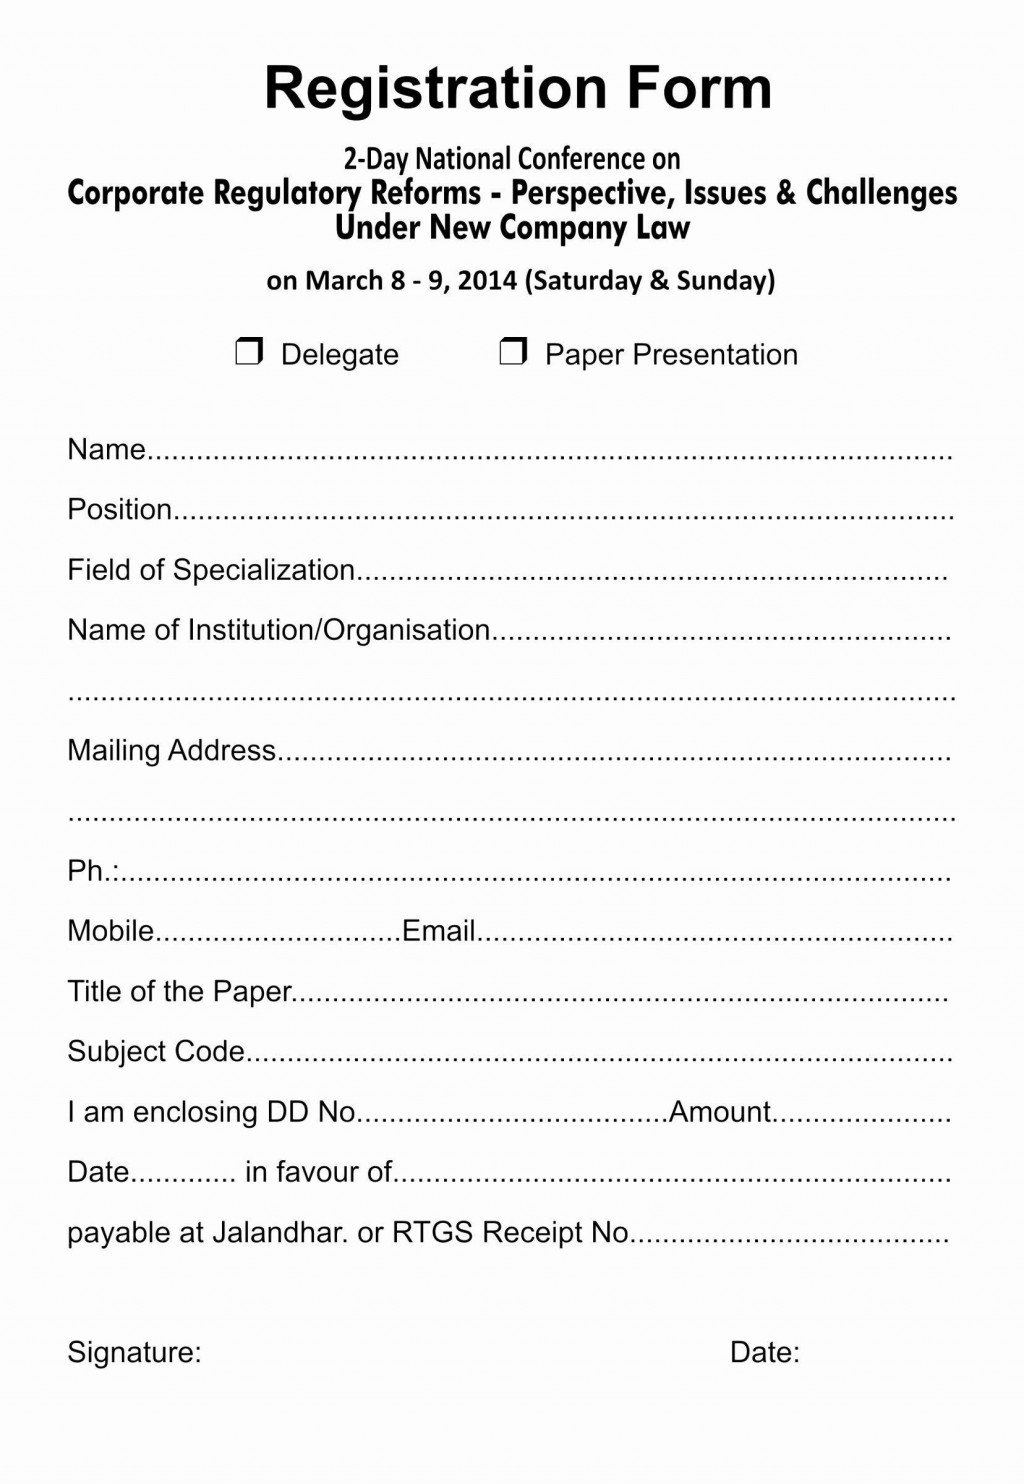 002 Fearsome Registration Form Template Word Design  Conference FreeLarge